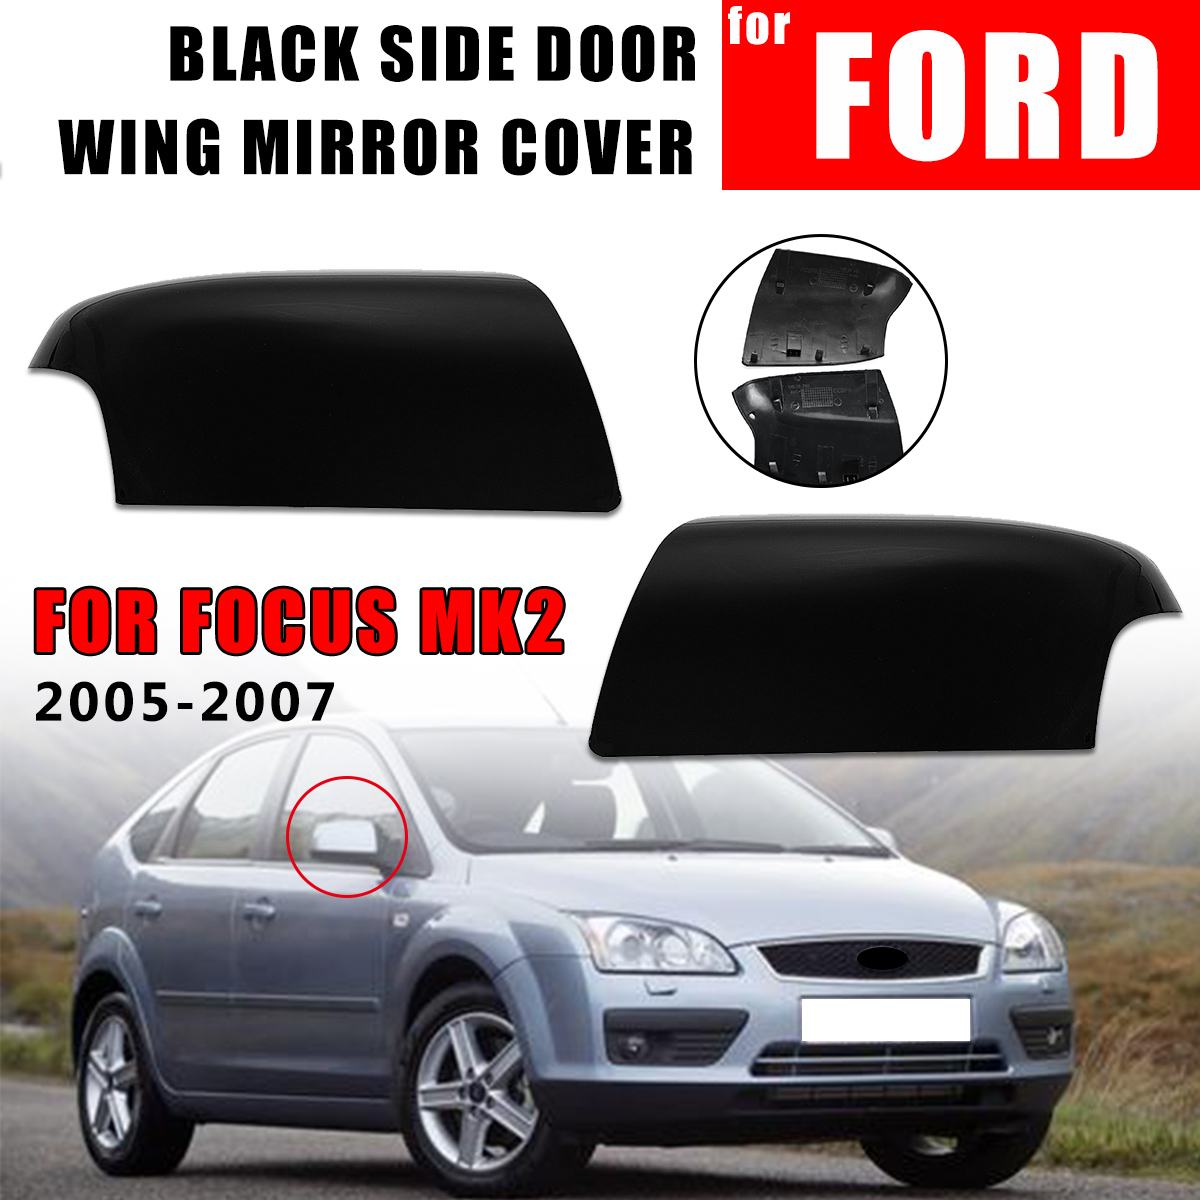 Driver /& Passenger Side View Mirror Cover Cap Pair for Ford Focus 2007-2011